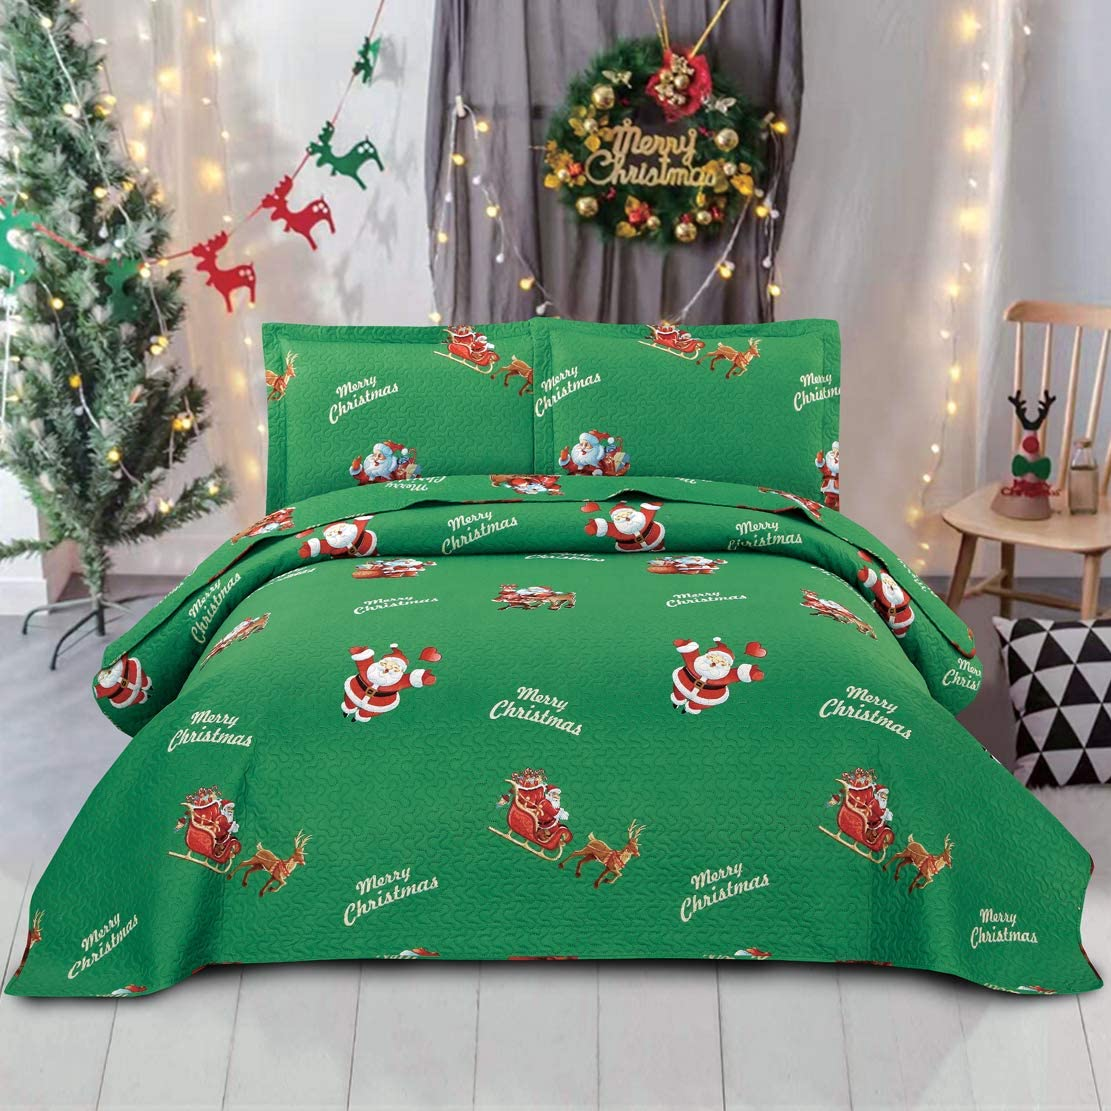 JARSON Green Christmas Quilts Set Lightweight Bedspreads King Size,3Pcs Santa Claus Deer Heart Printed Bedding Reversible Coverlet Pillow Shams New Year's Decoration